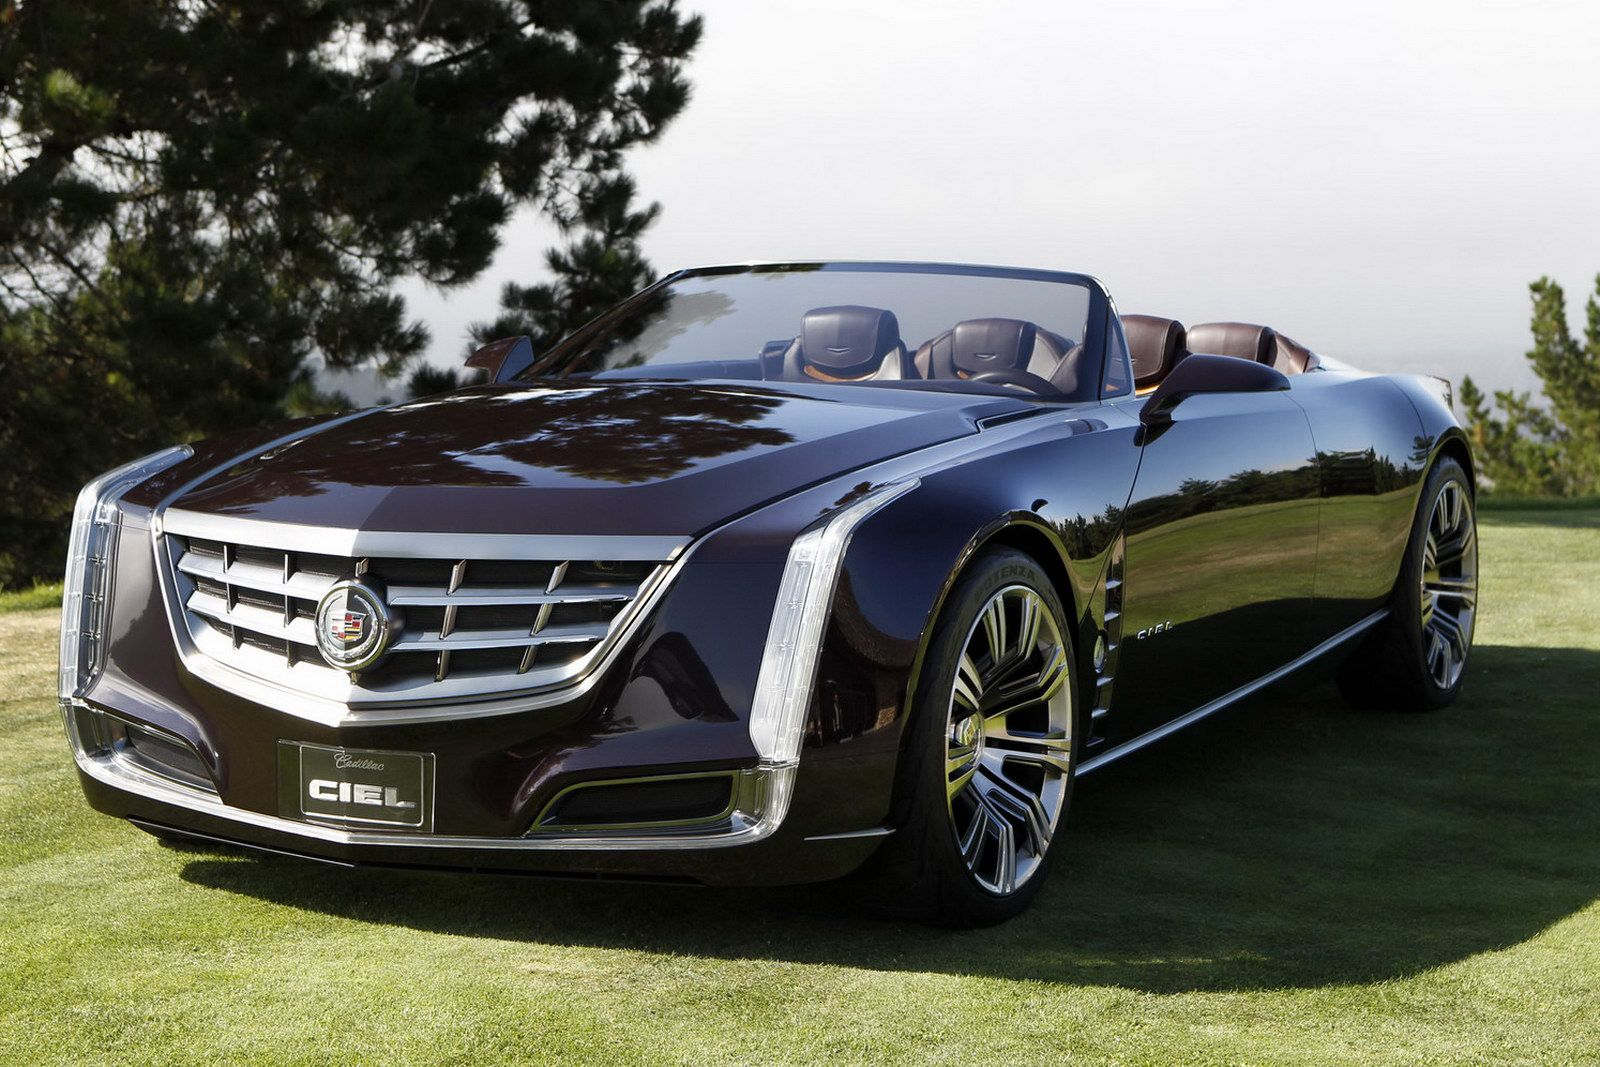 2018 Cadillac Eldorado With Speculations About Future  https